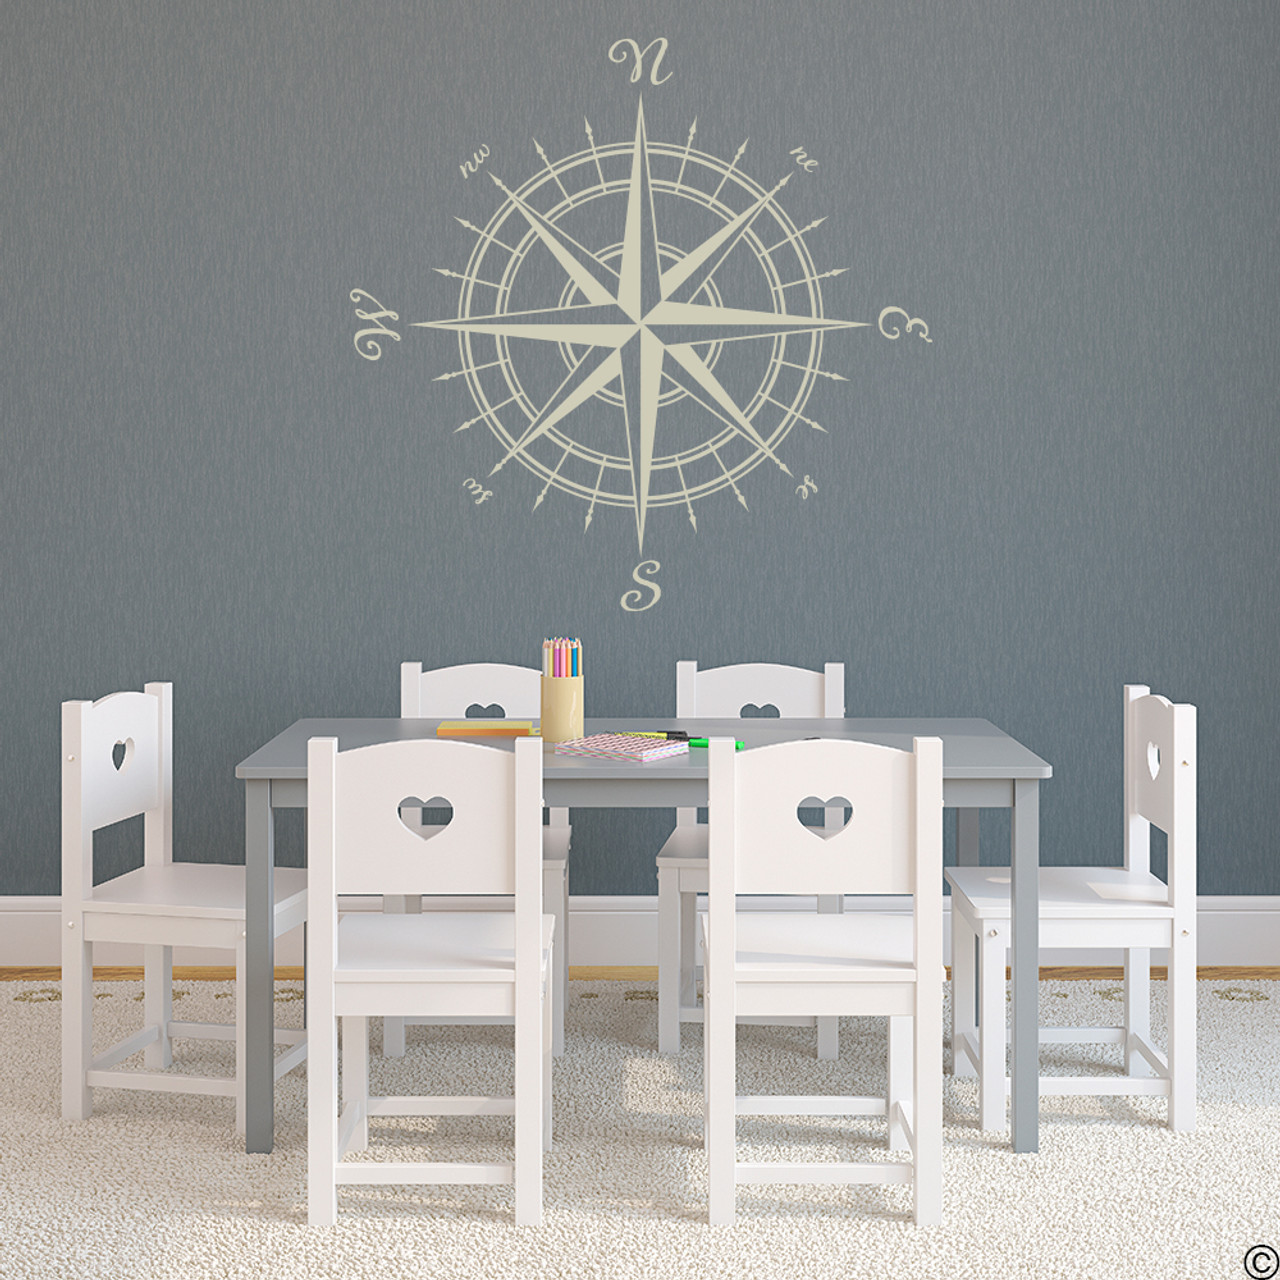 The Erasmus compass rose vinyl wall or ceiling decal in warm grey